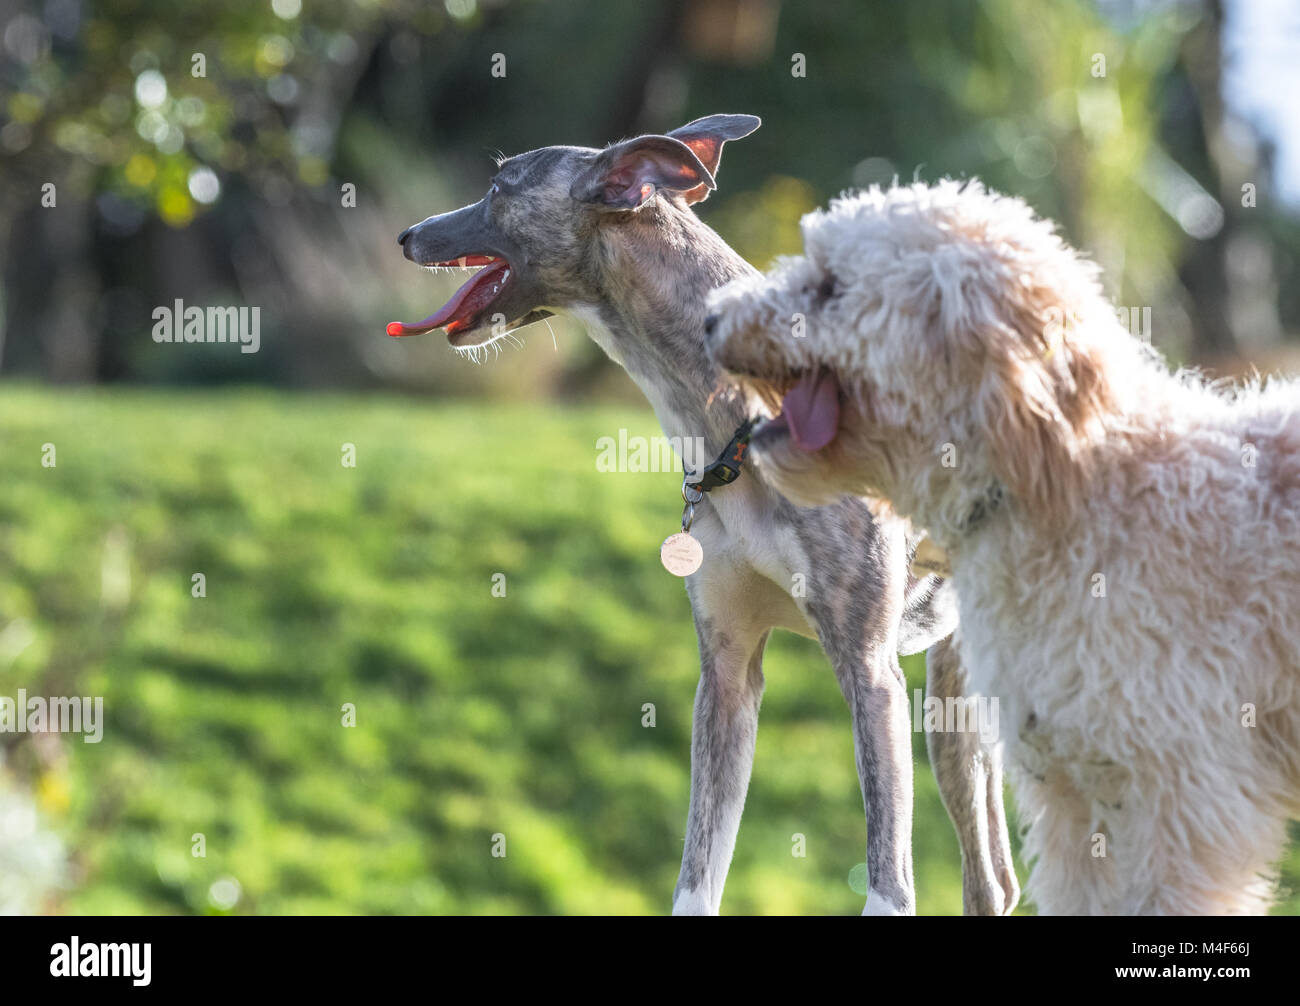 Whippet and Cockerpoo puppies. - Stock Image